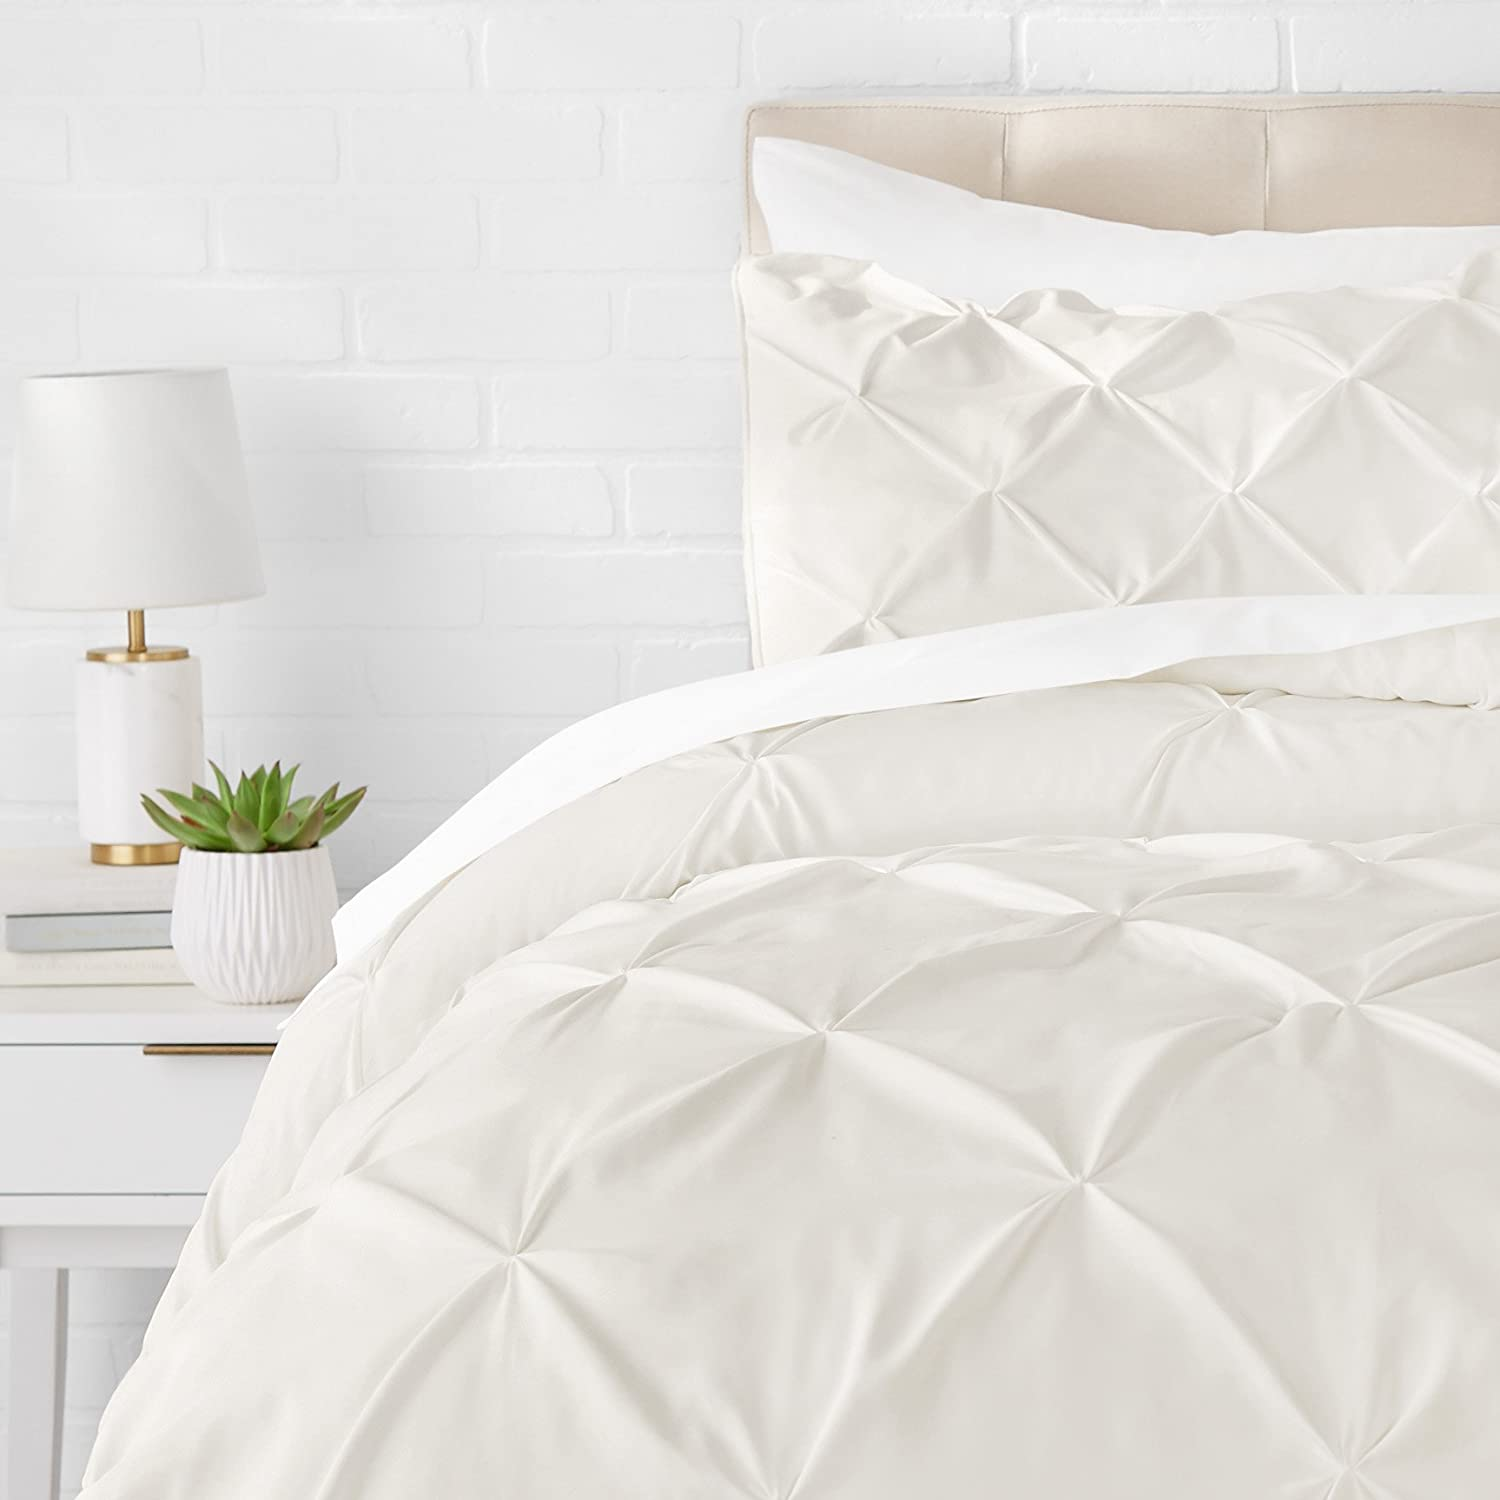 AmazonBasics Pinch Pleat Comforter Bedding Set, Twin, Cream